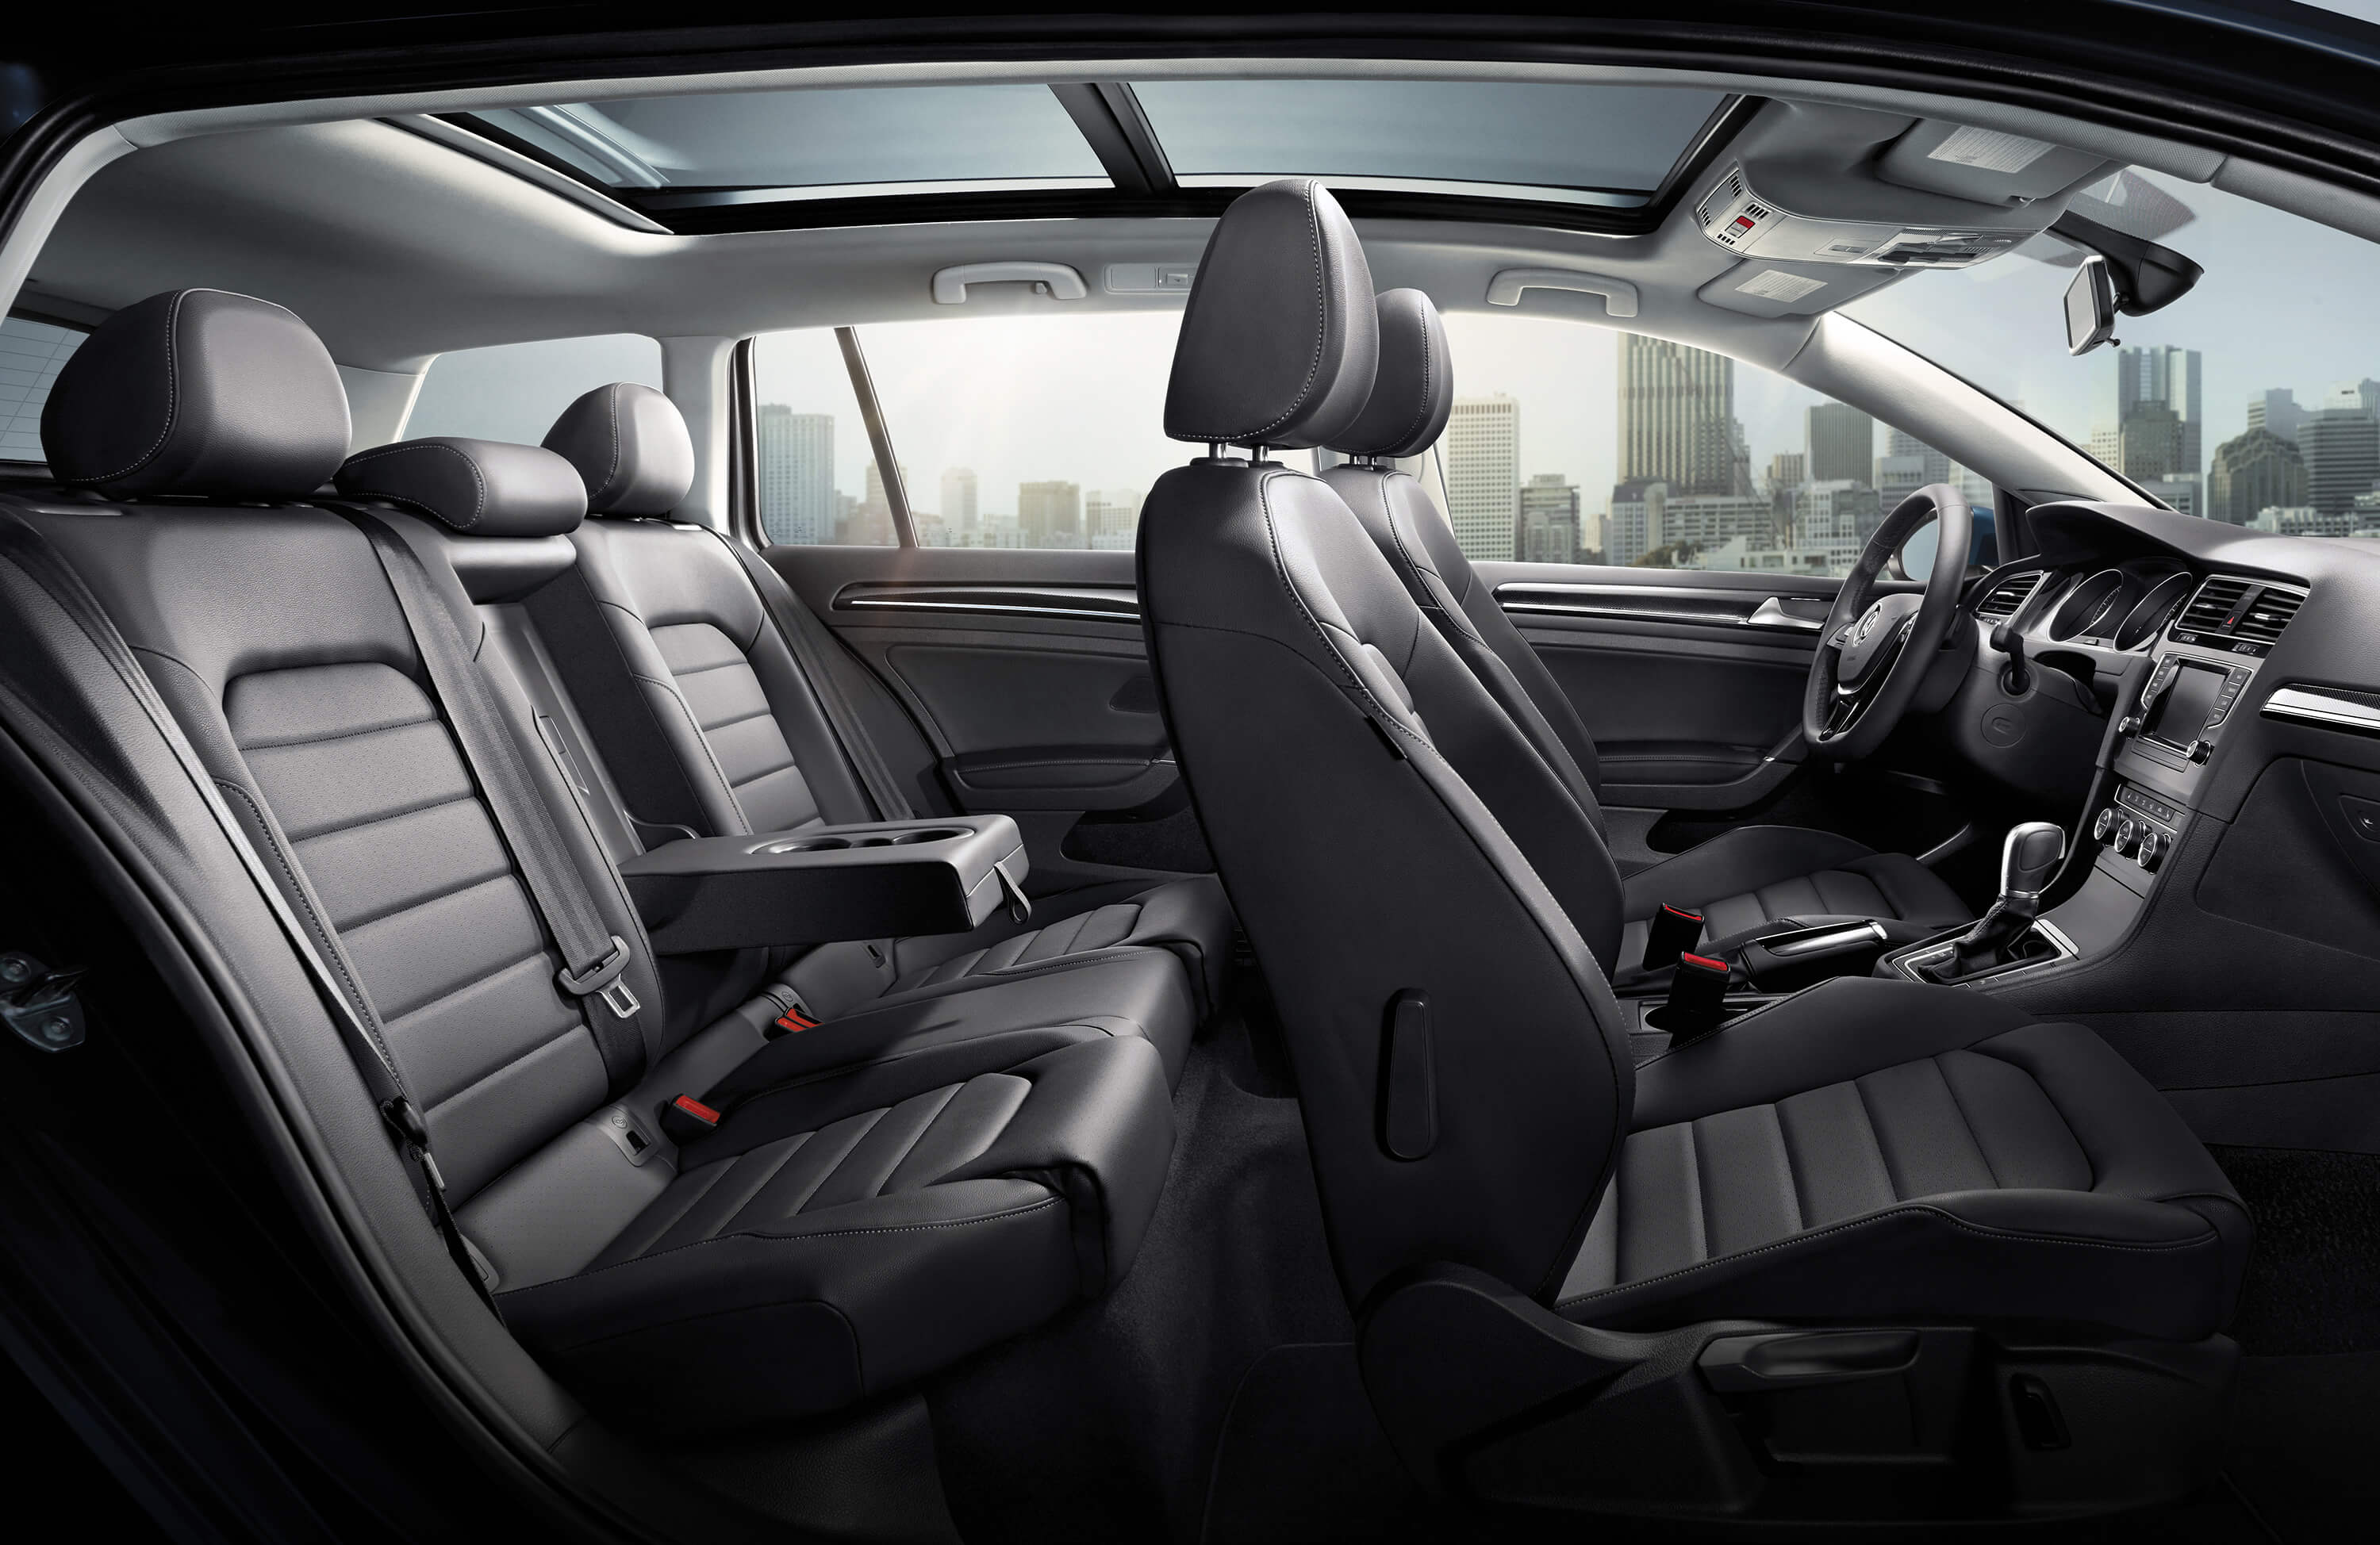 New VW Golf SportWagen Interior image 2